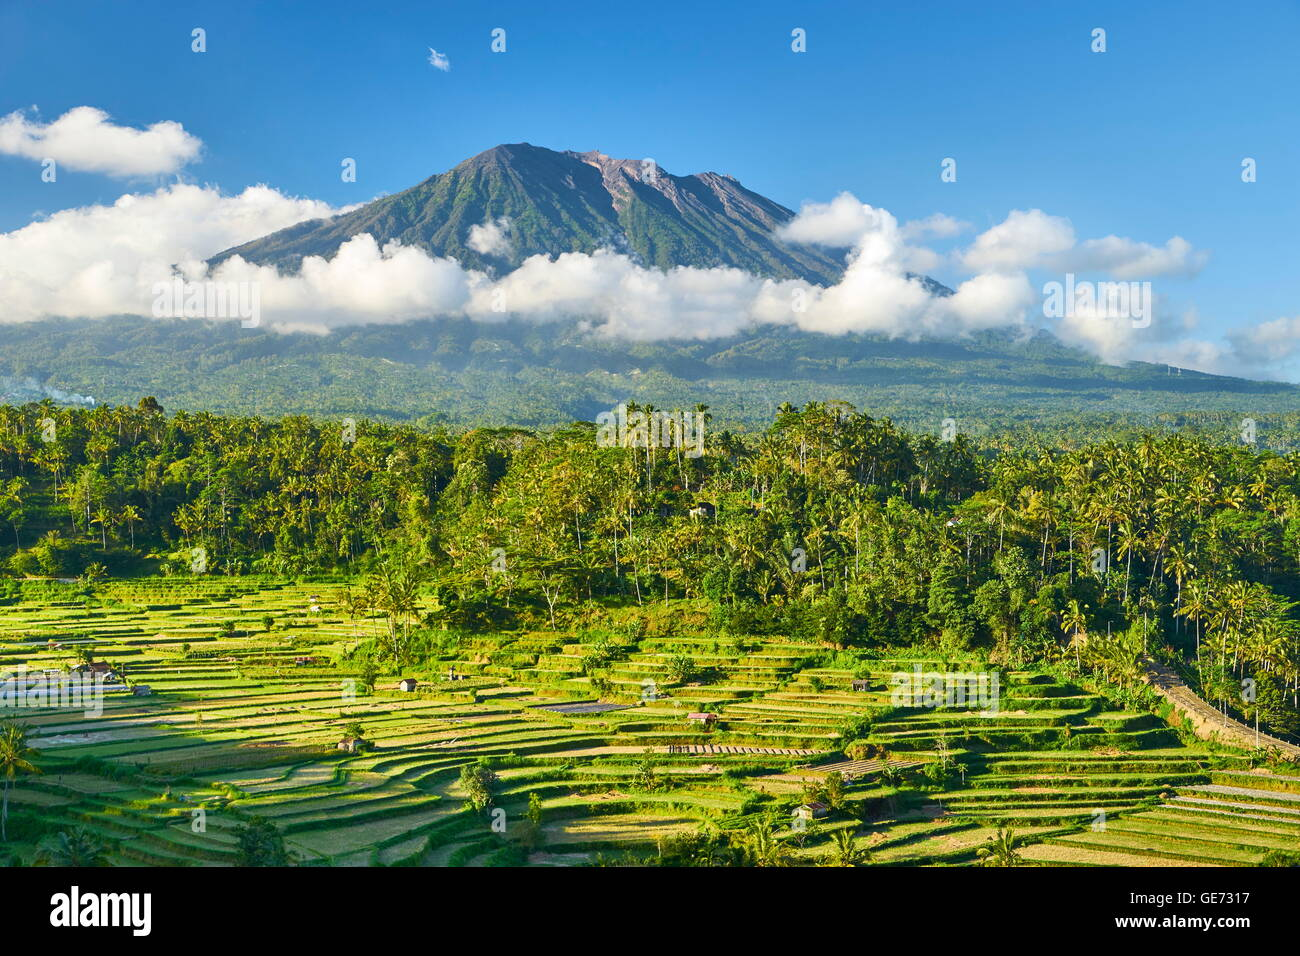 Gunung Agung Volcano and rice terraces landscape, Bali, Indonesia - Stock Image